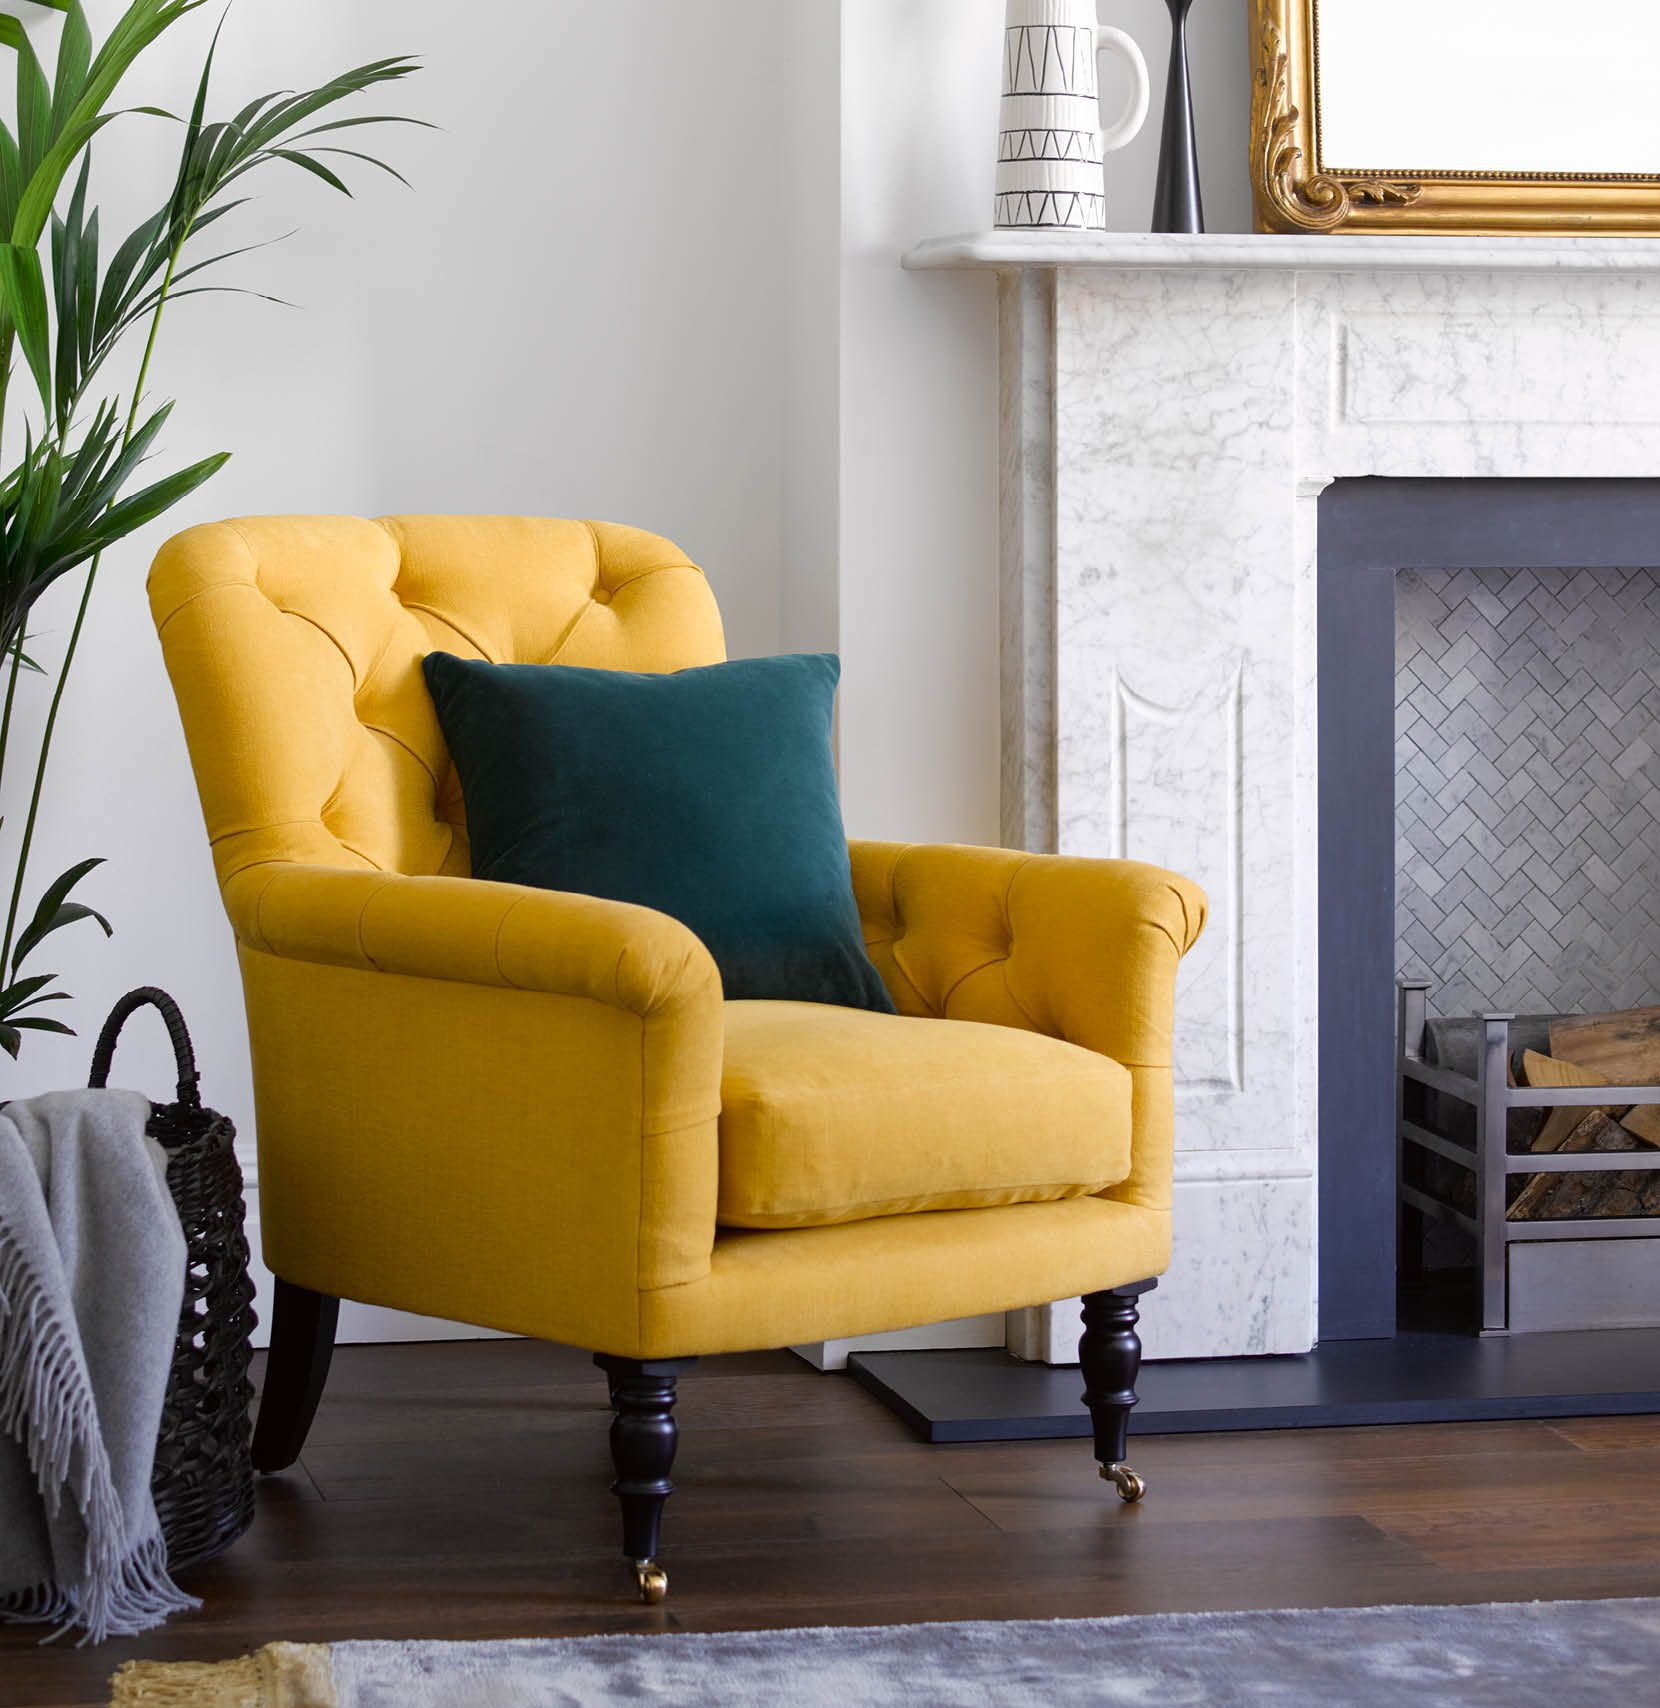 Poppy yellow armchair in Mango brushed linen cotton fabric in modern living room